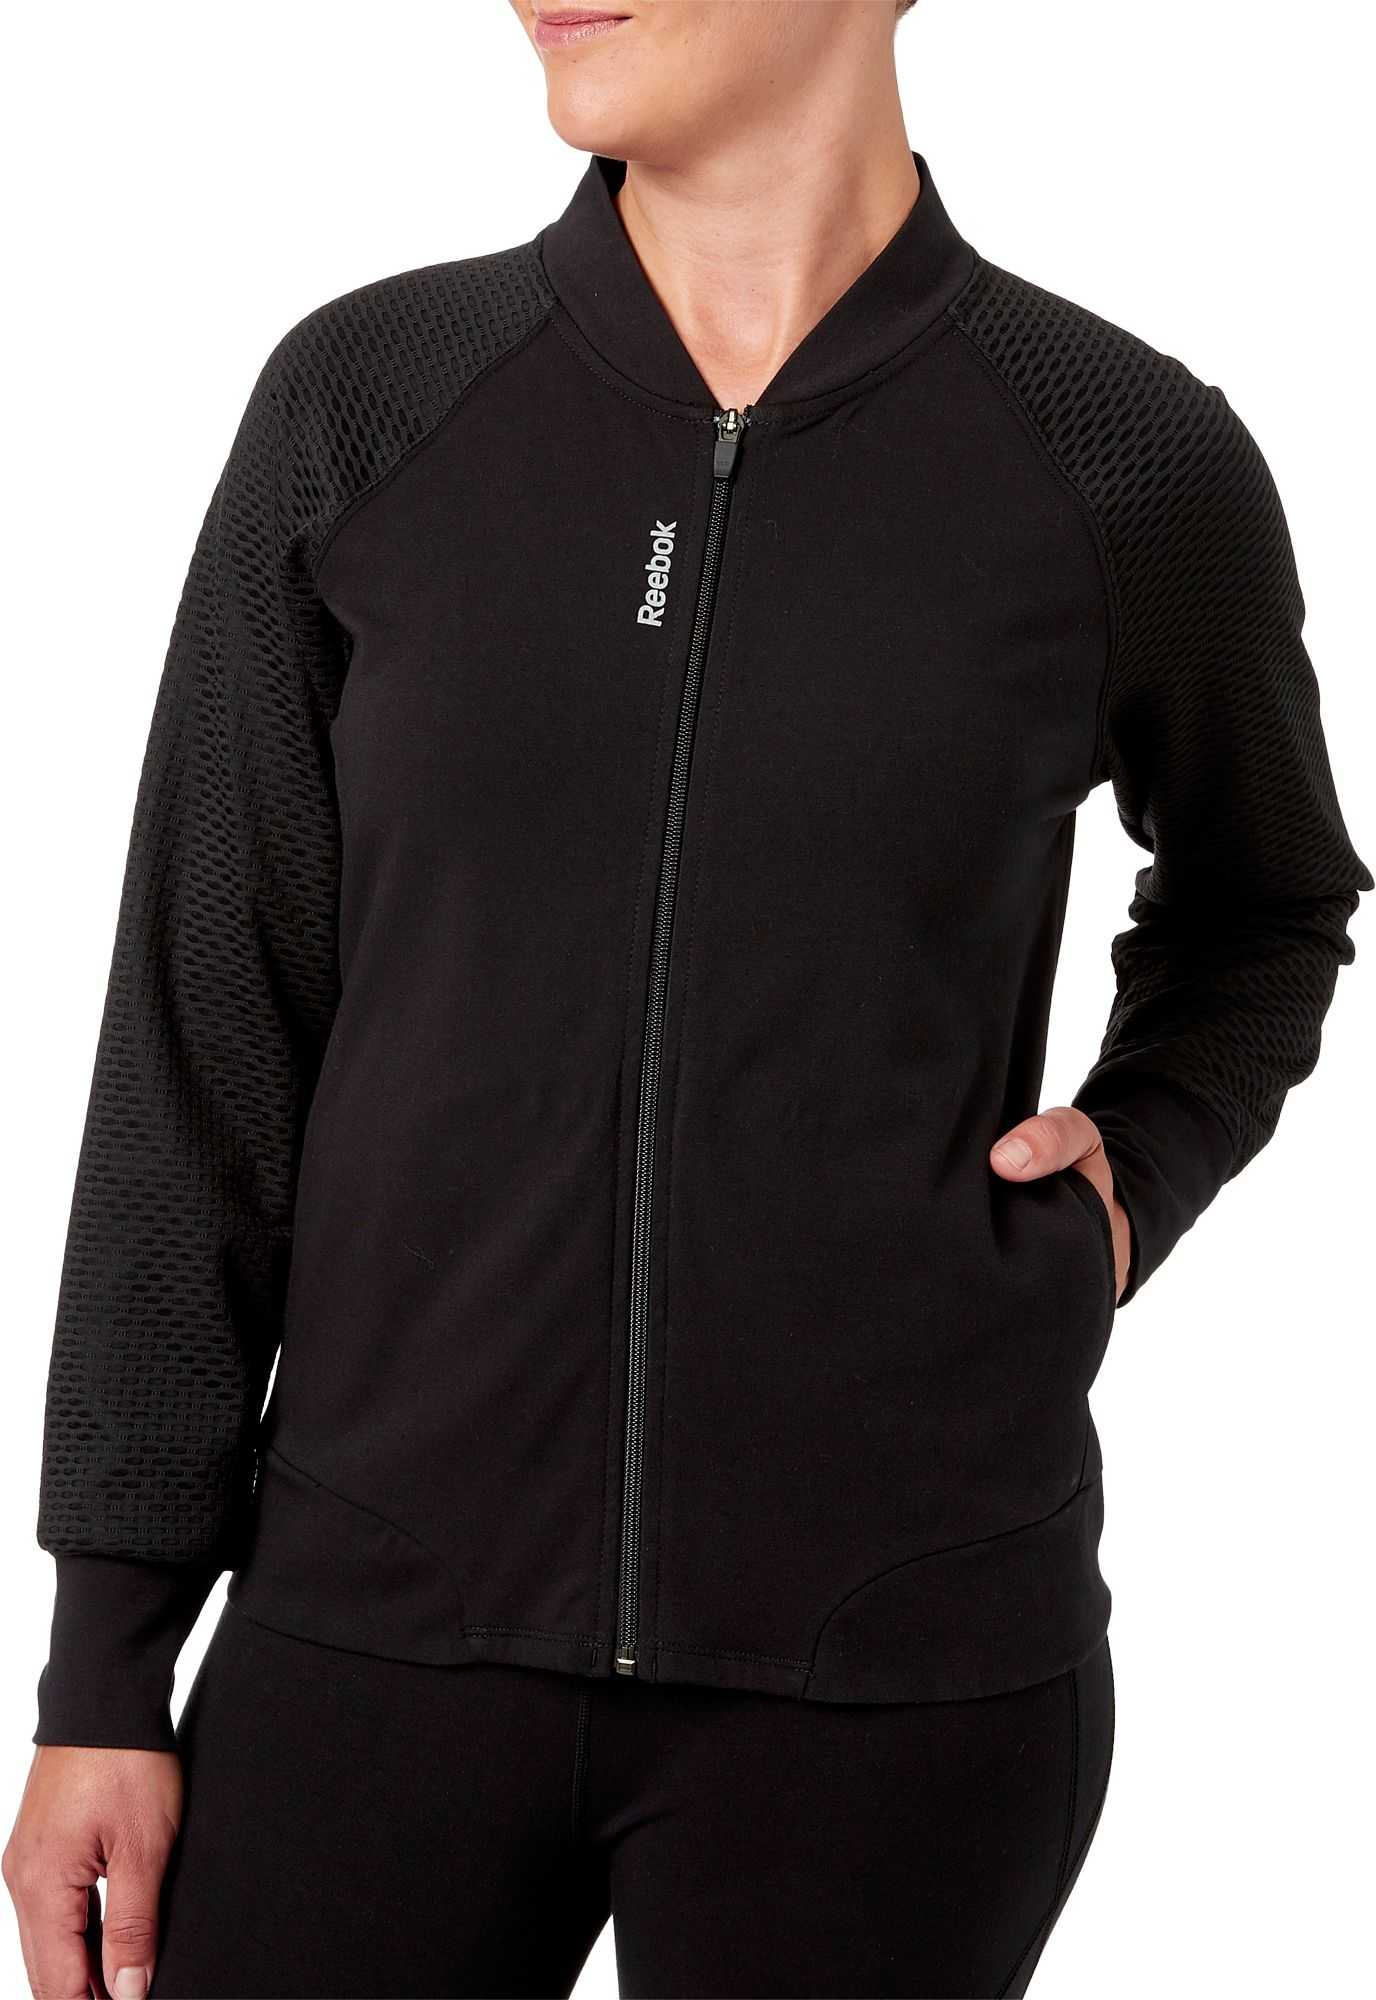 Reebok Women's Stretch Cotton Bomber Jacket | DICK'S Sporting Goods